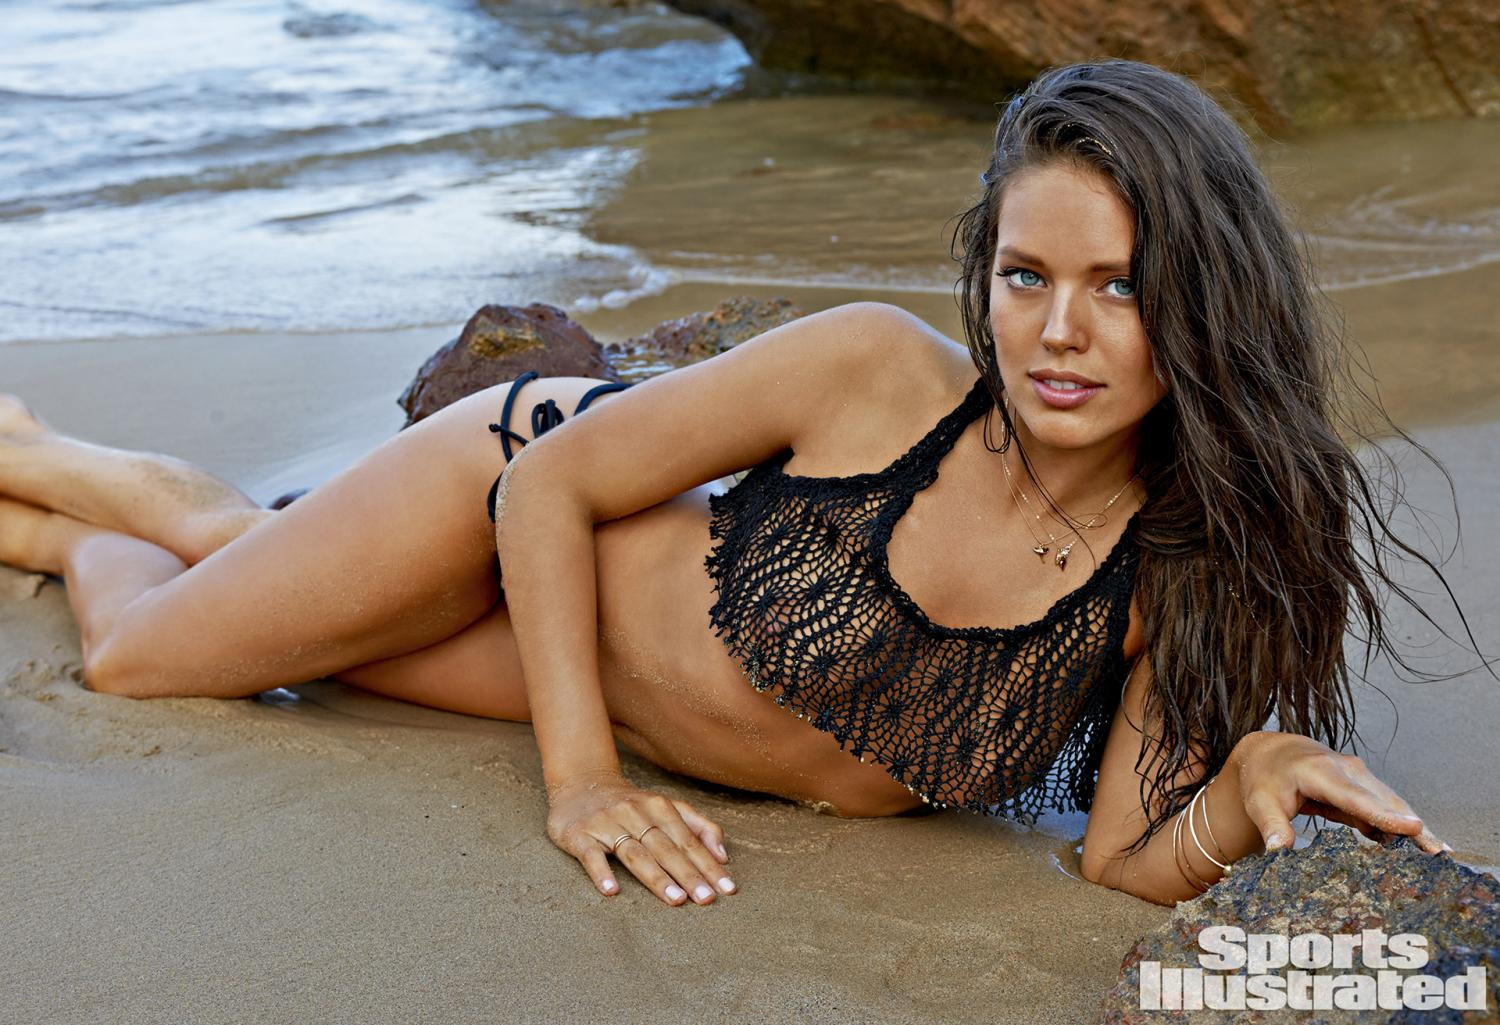 Emily DiDonato Swimsuit Photos, Sports Illustrated Swimsuit 2015